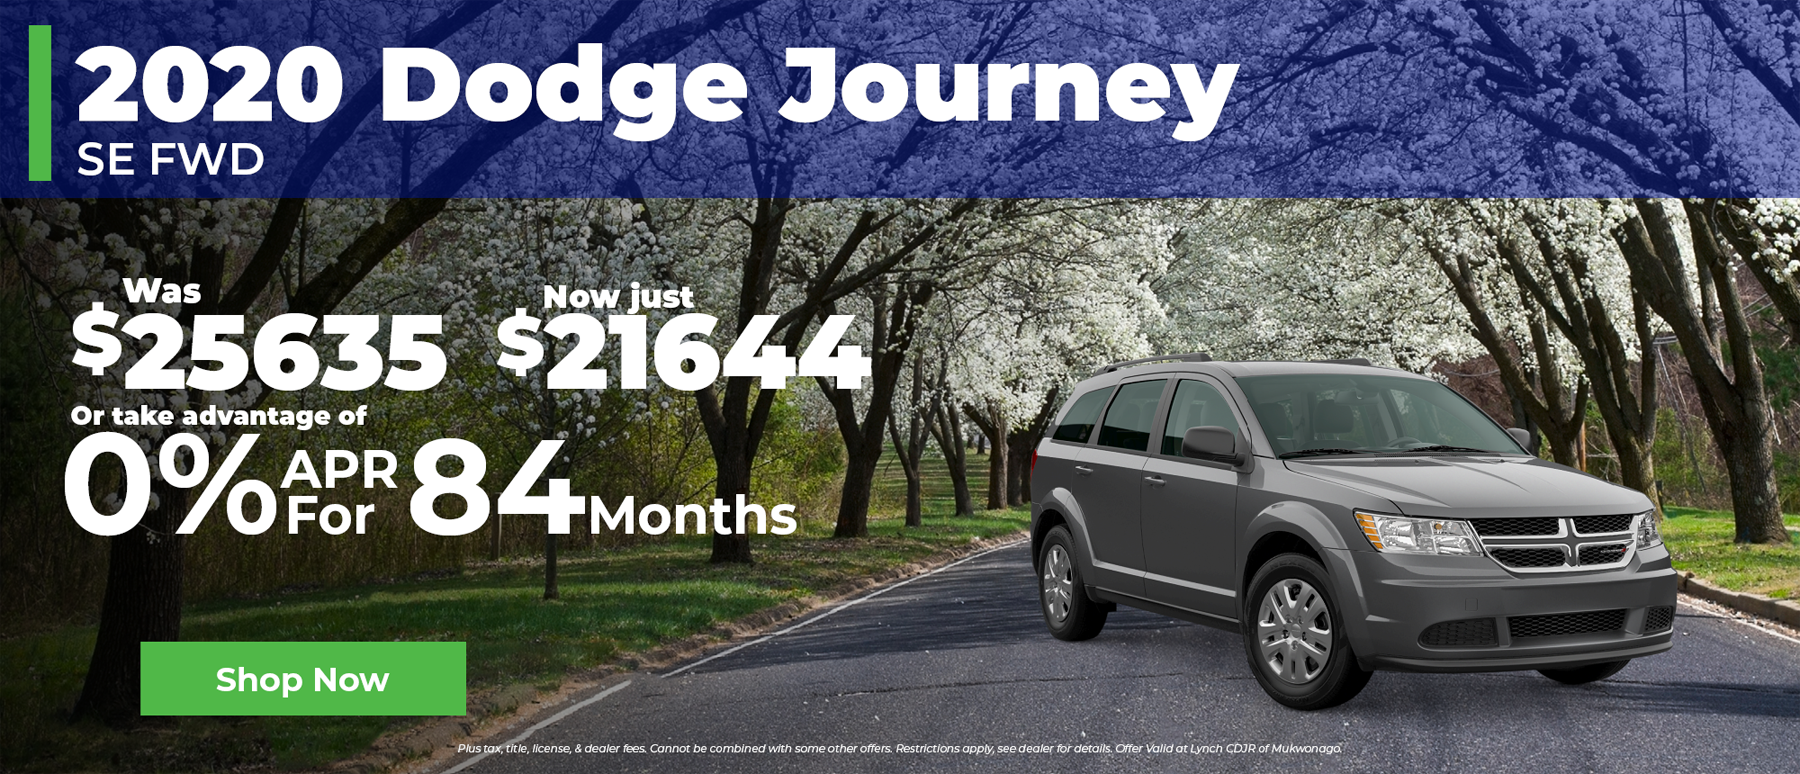 0% Financing for 84 Months on 2020 Dodge Journey in Mukwonago WI